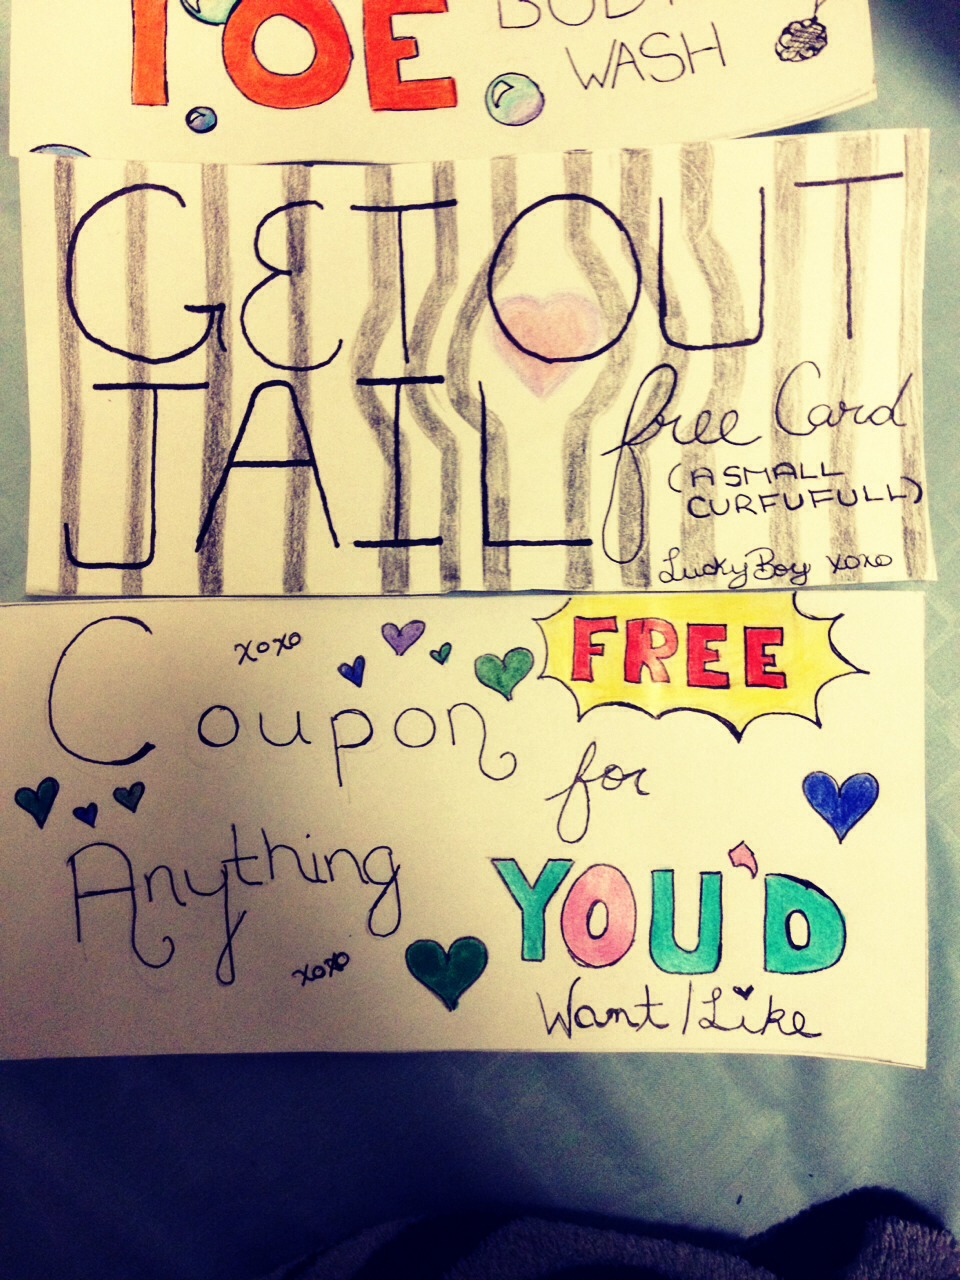 Get out of jail! Small fights! Coupon for anything he/she wants!